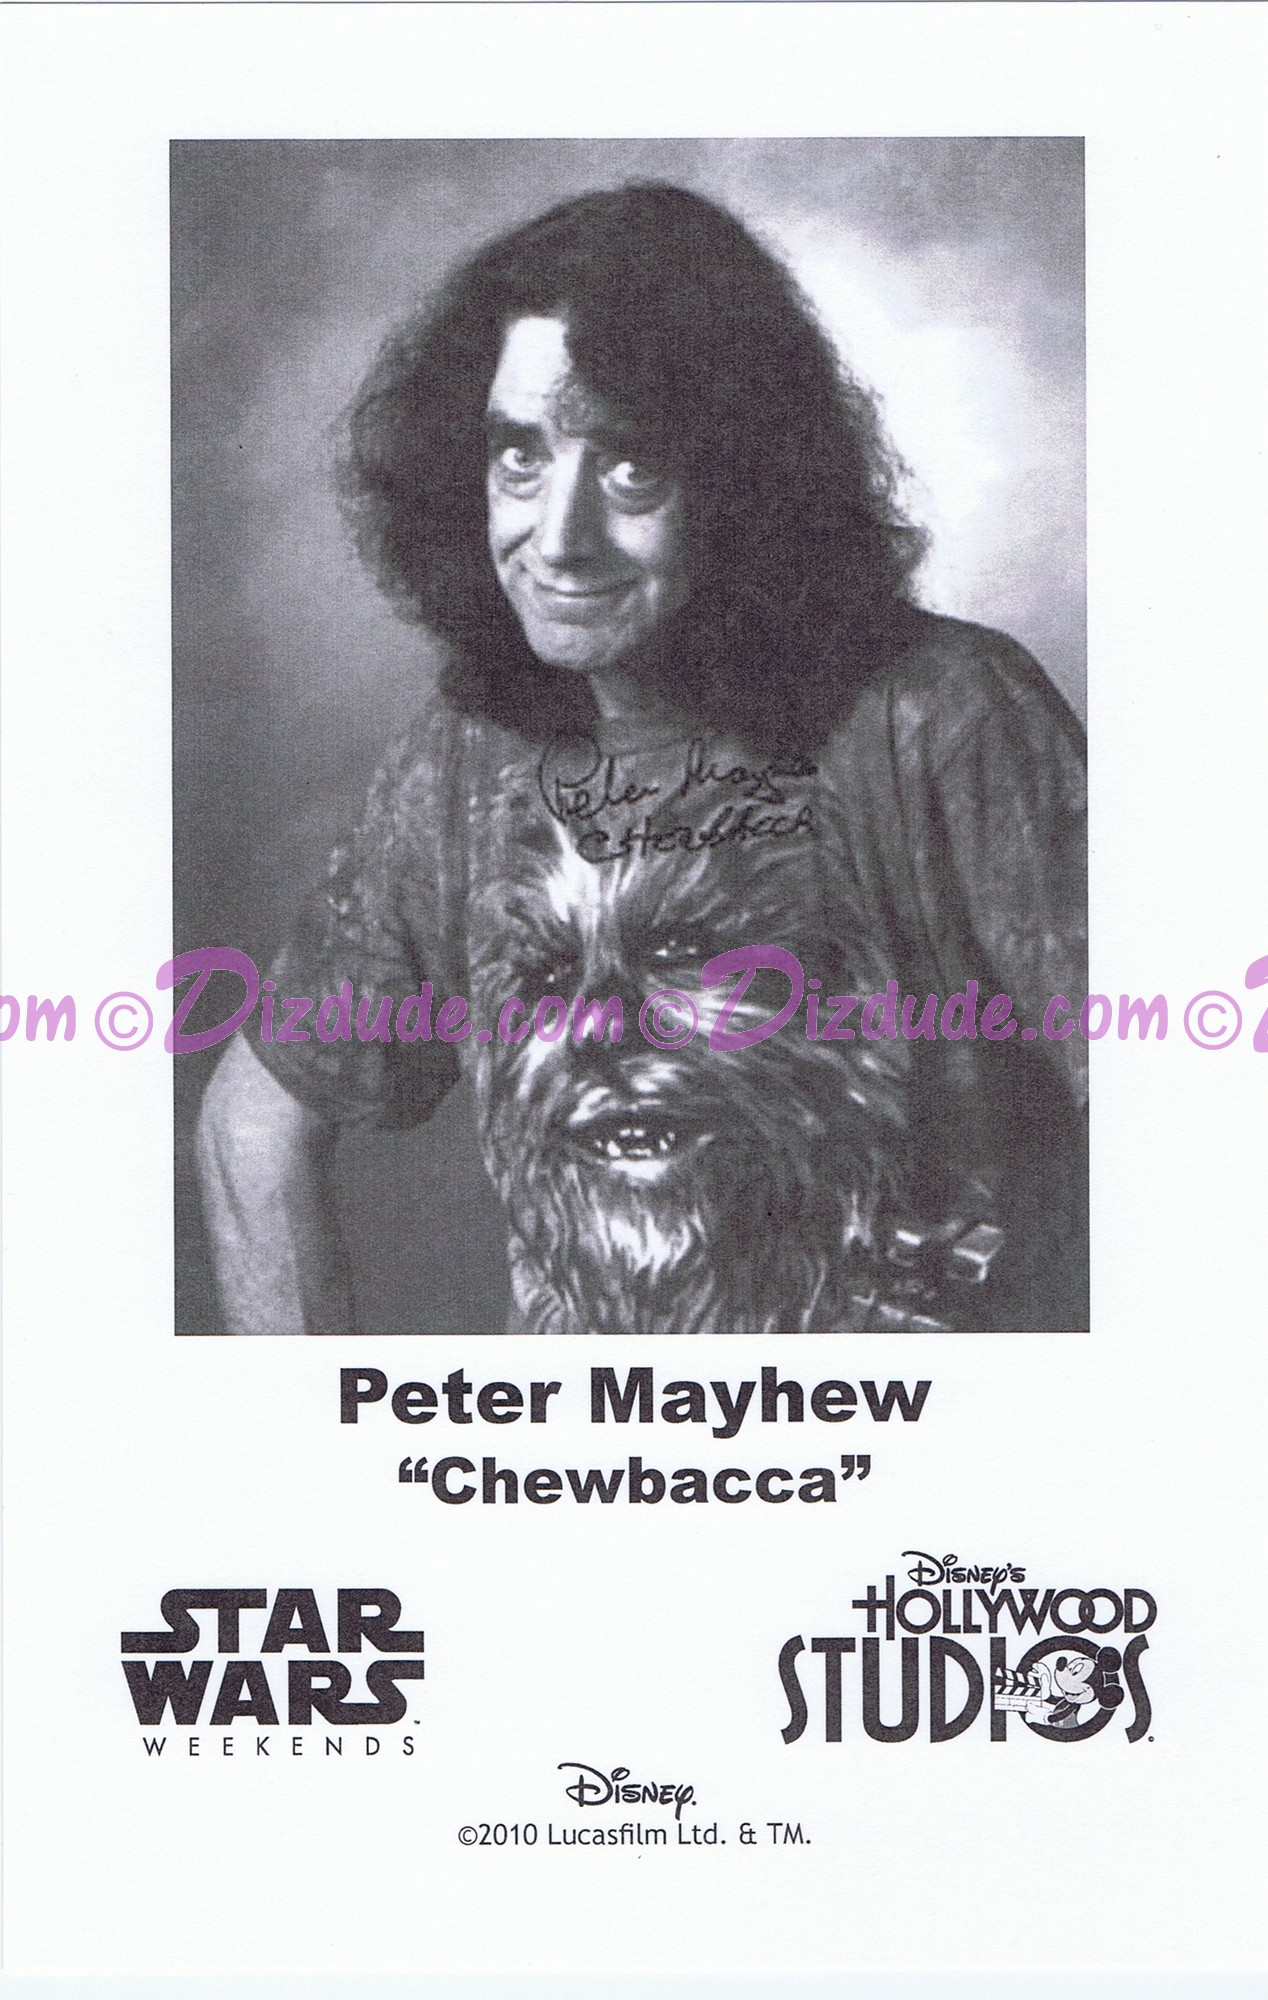 Peter Mayhew who played Chewbacca Presigned Official Star Wars Weekends 2010 Celebrity Collector Photo